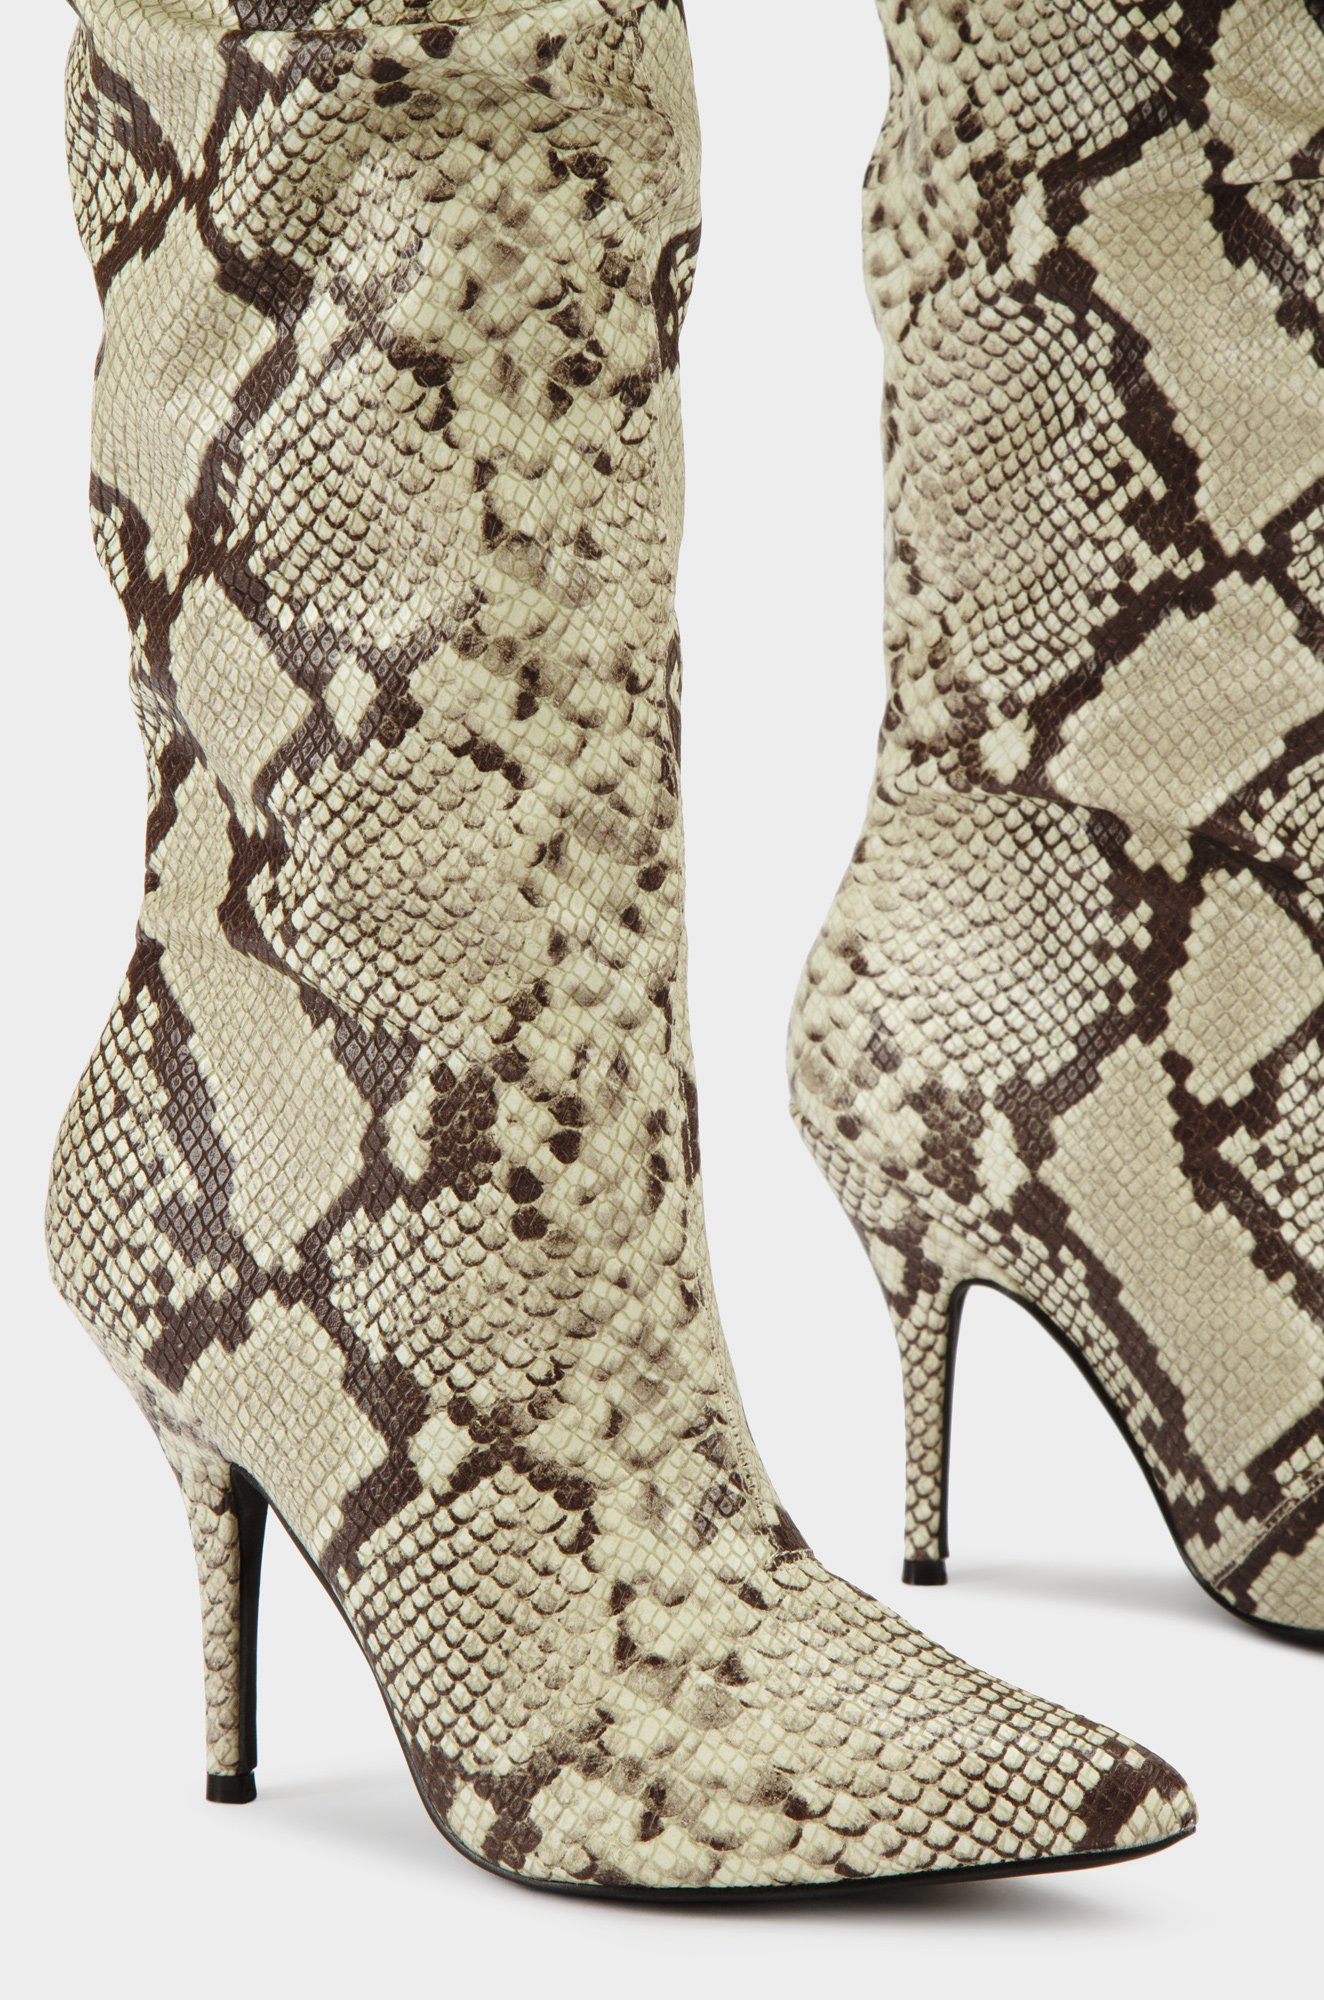 Cape-Robbin-Bown-Snake-Thigh-High-Slouch-Pointed-Toe-Over-The-Knee-Stiletto-Boot thumbnail 14